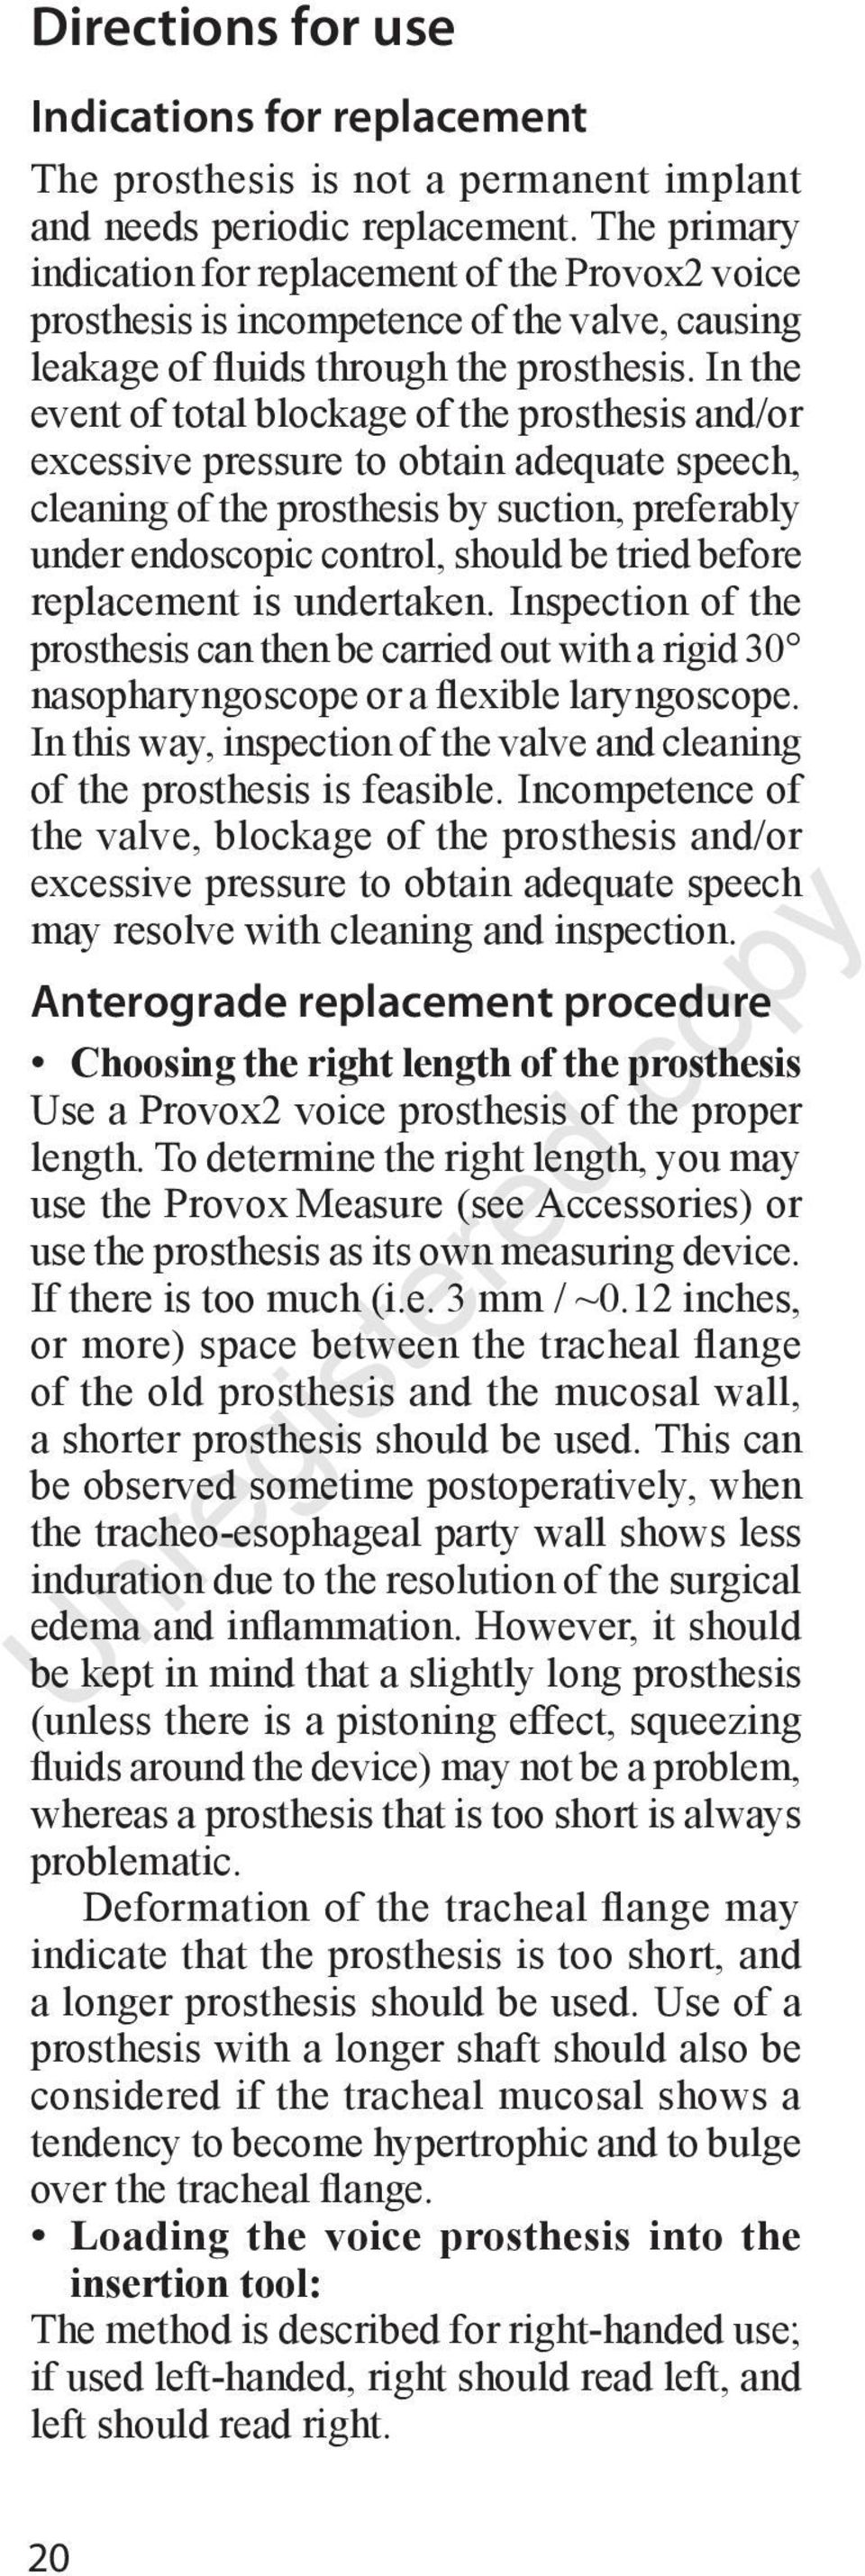 In the event of total blockage of the prosthesis and/or excessive pressure to obtain adequate speech, cleaning of the prosthesis by suction, preferably under endoscopic control, should be tried